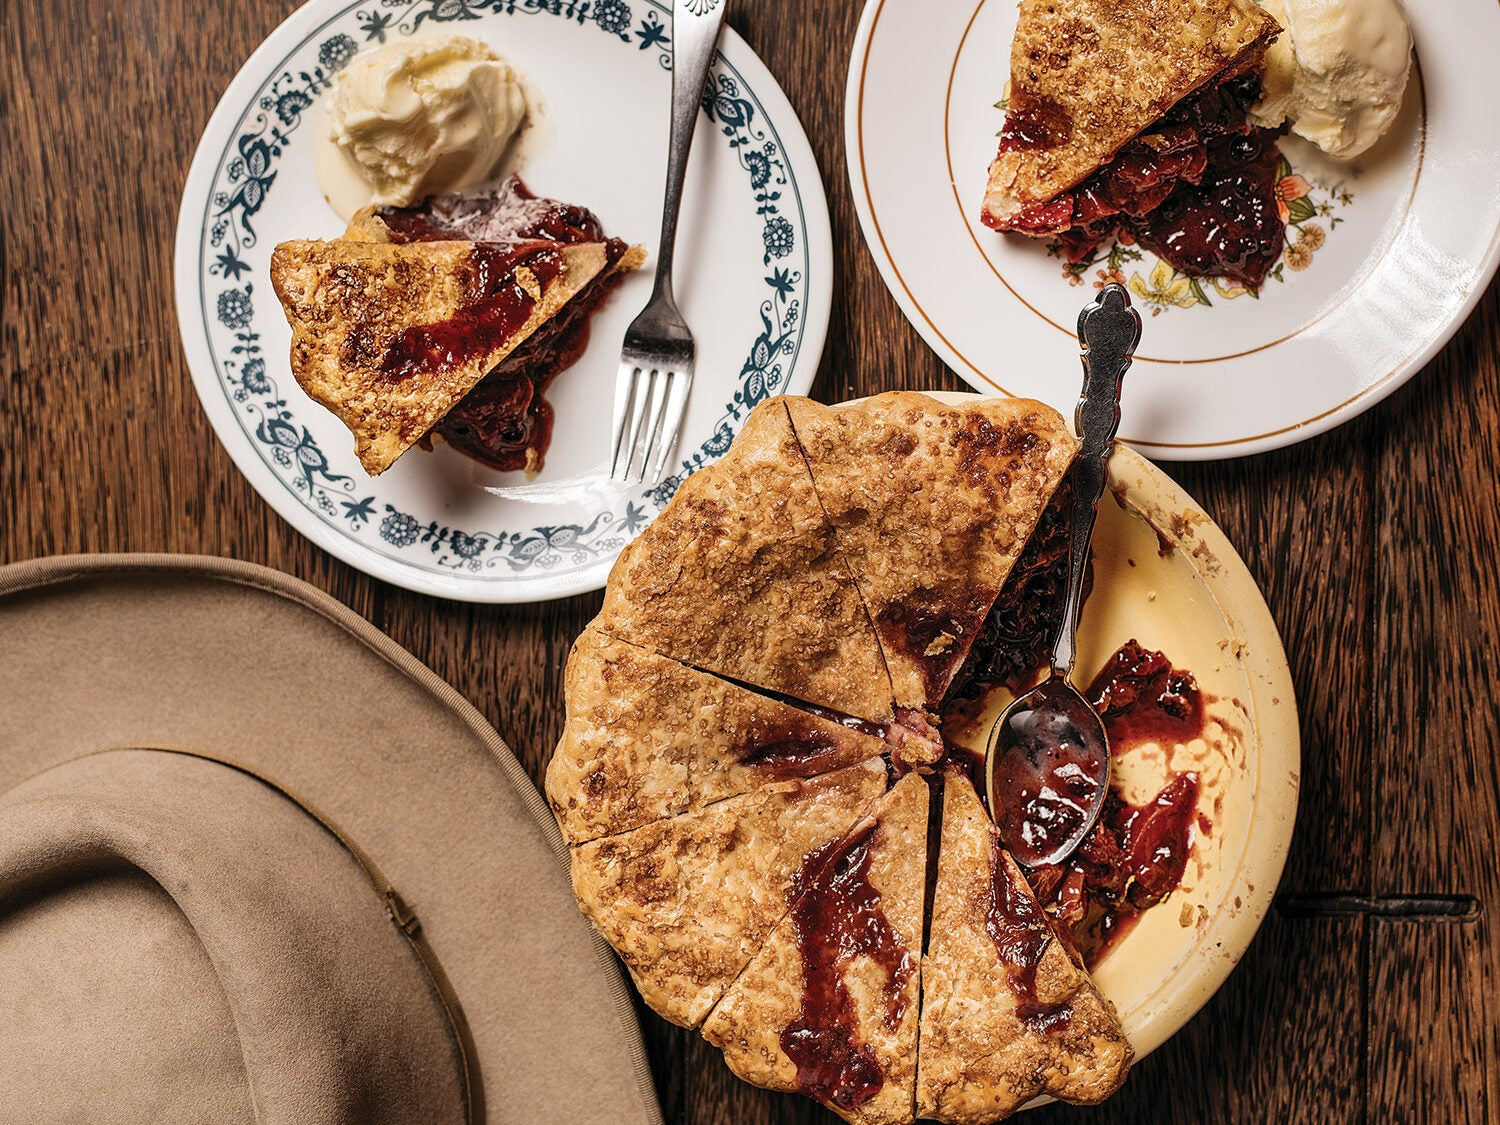 Nectarine and Huckleberry Pie for 4th of July Recipes